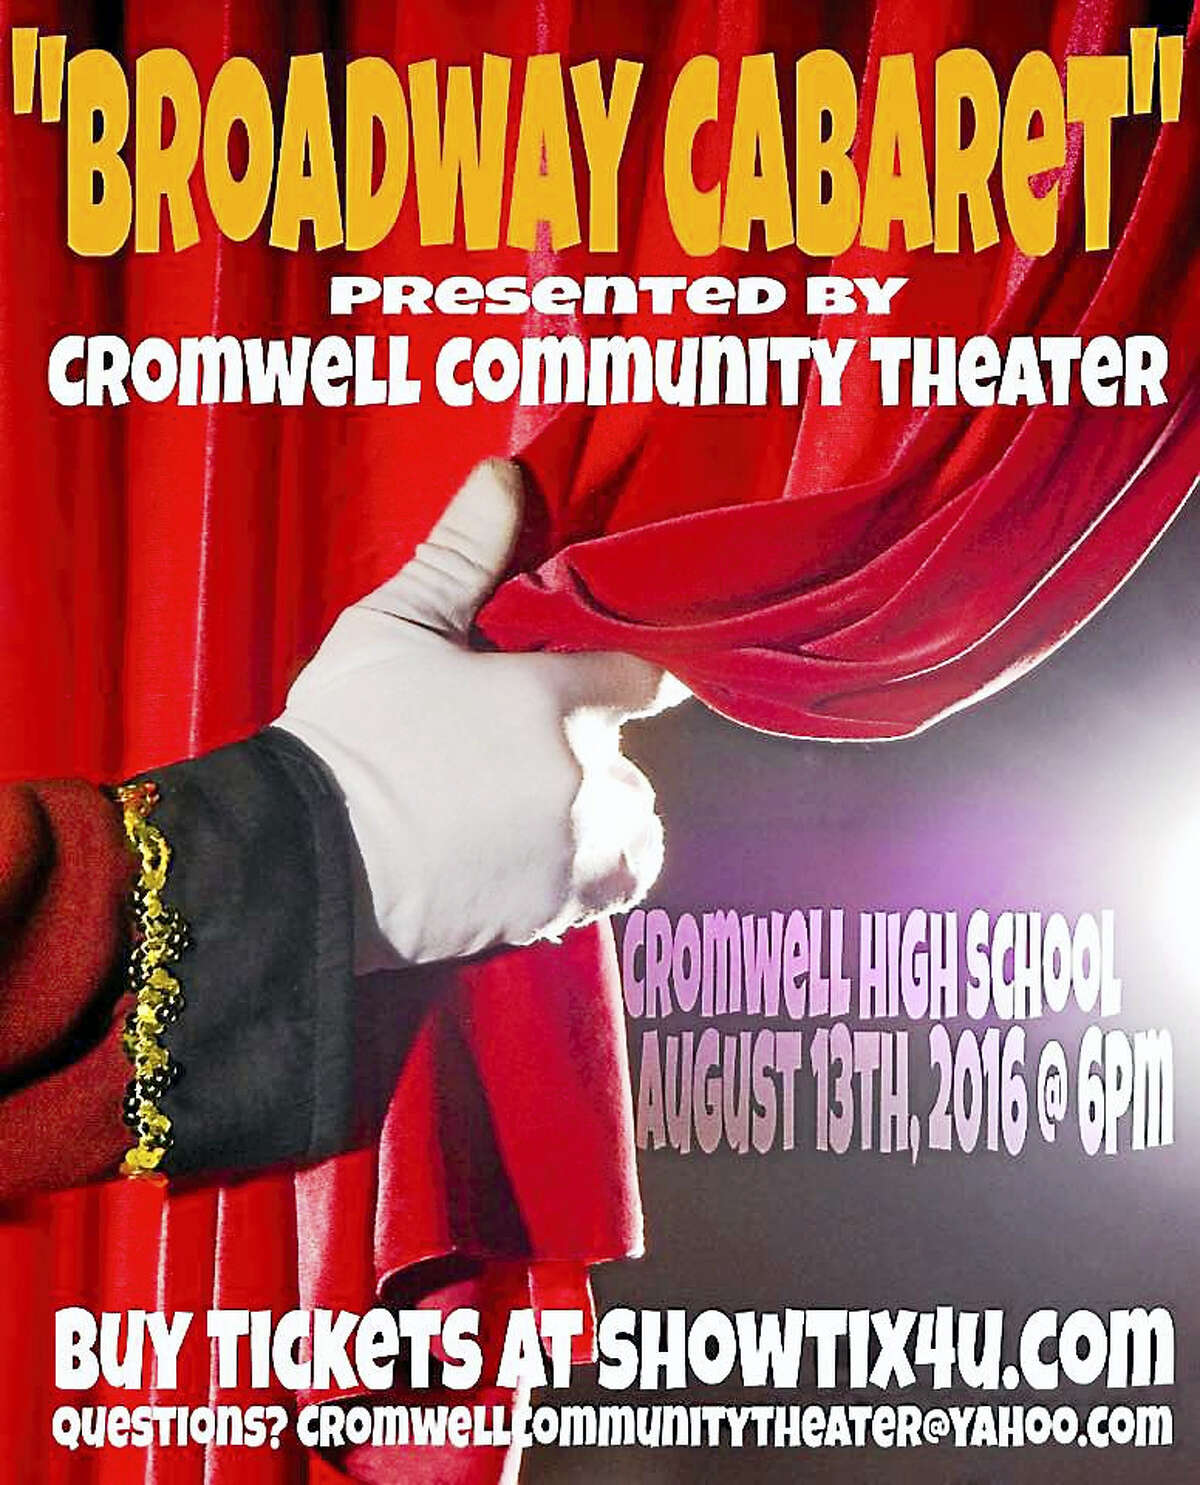 Cromwell Community Theater singers, dancers, comedians and instrumentalists will show off their skills this weekend.